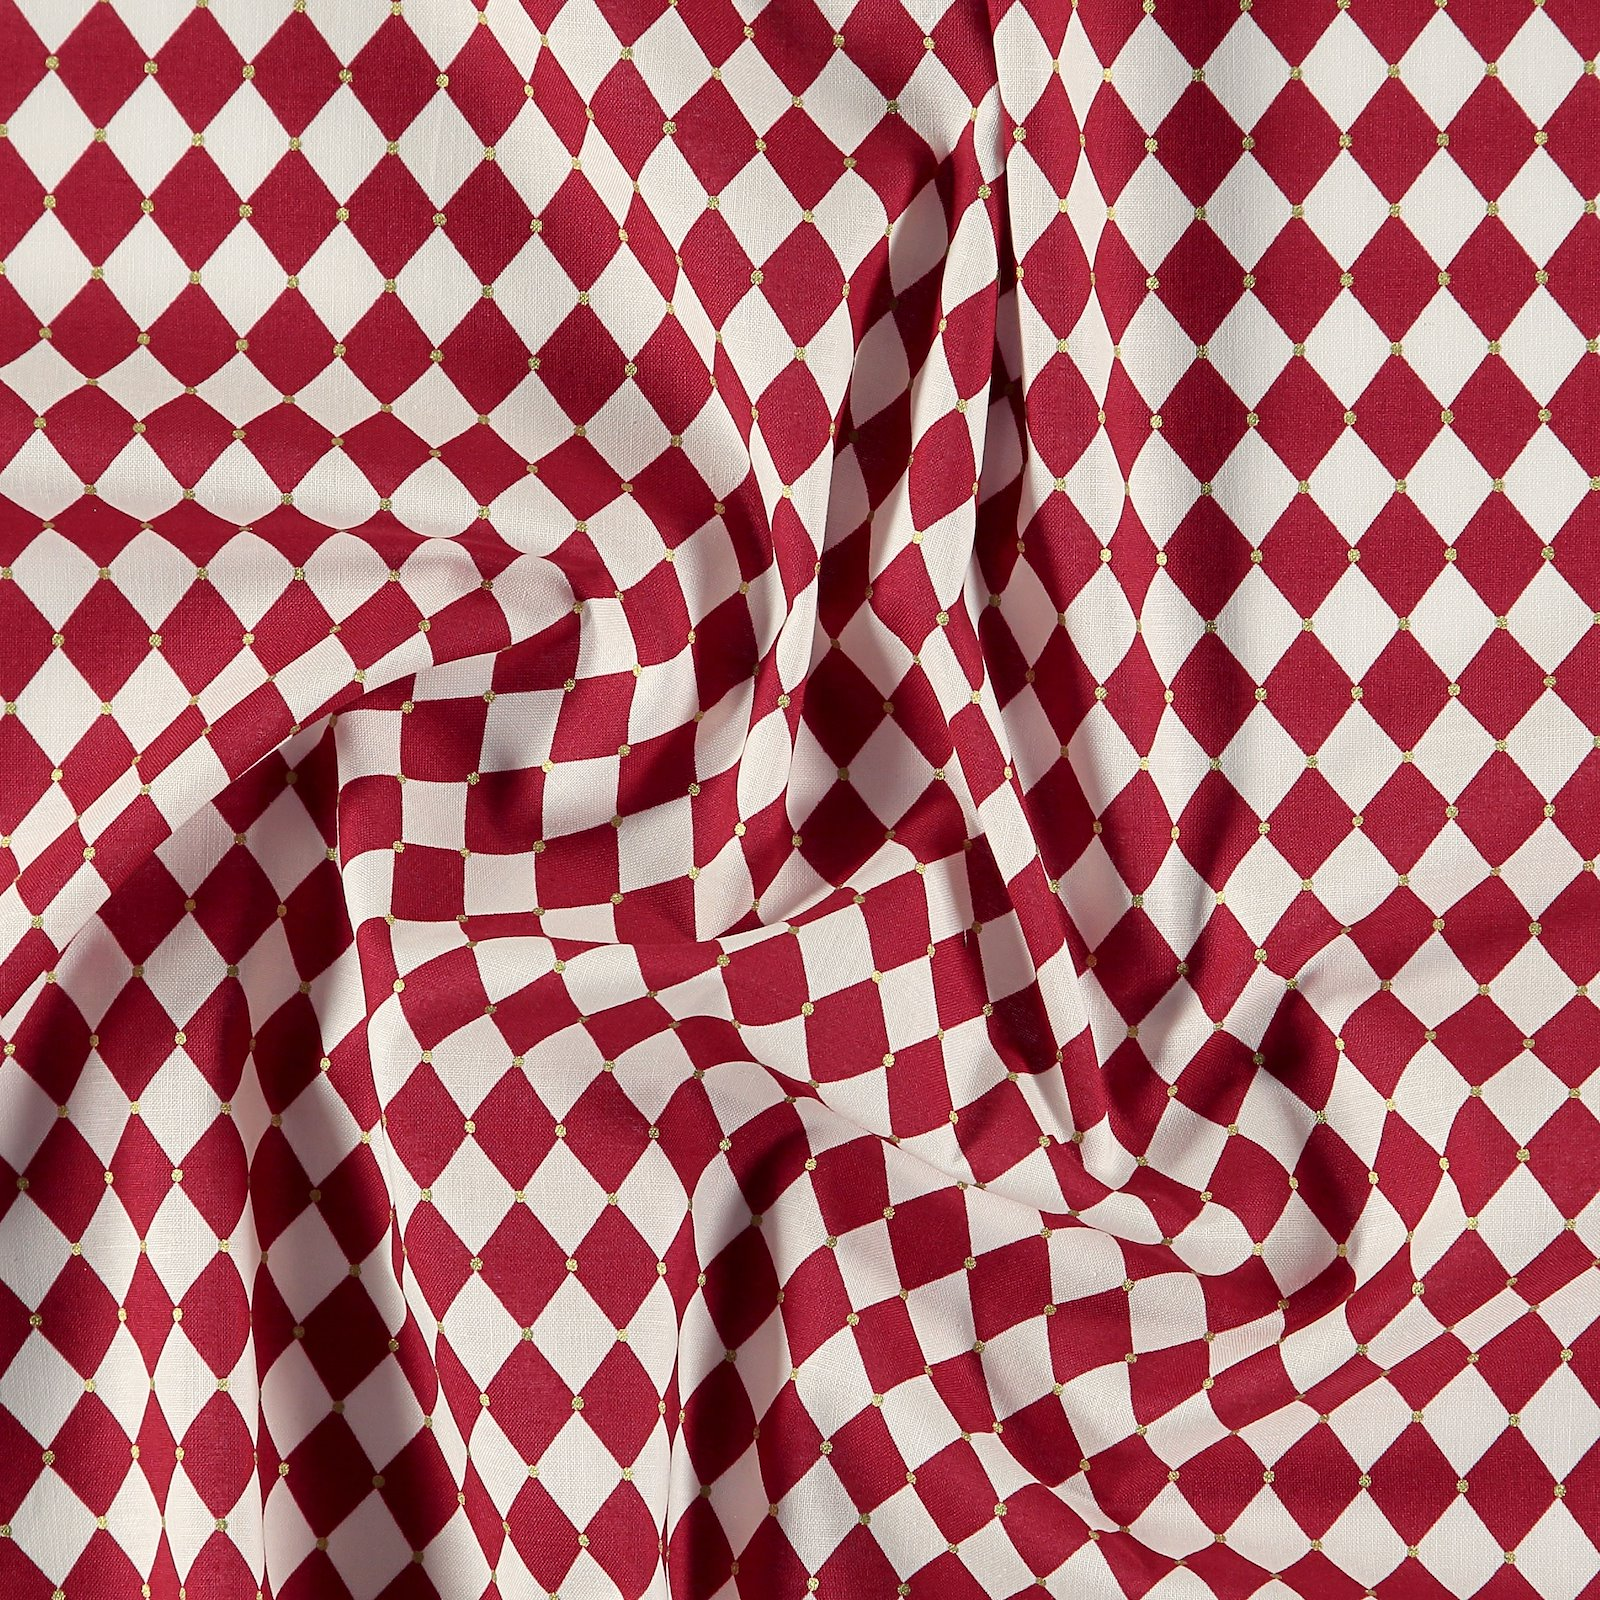 Cotton red and white harlequin checks 852395_pack